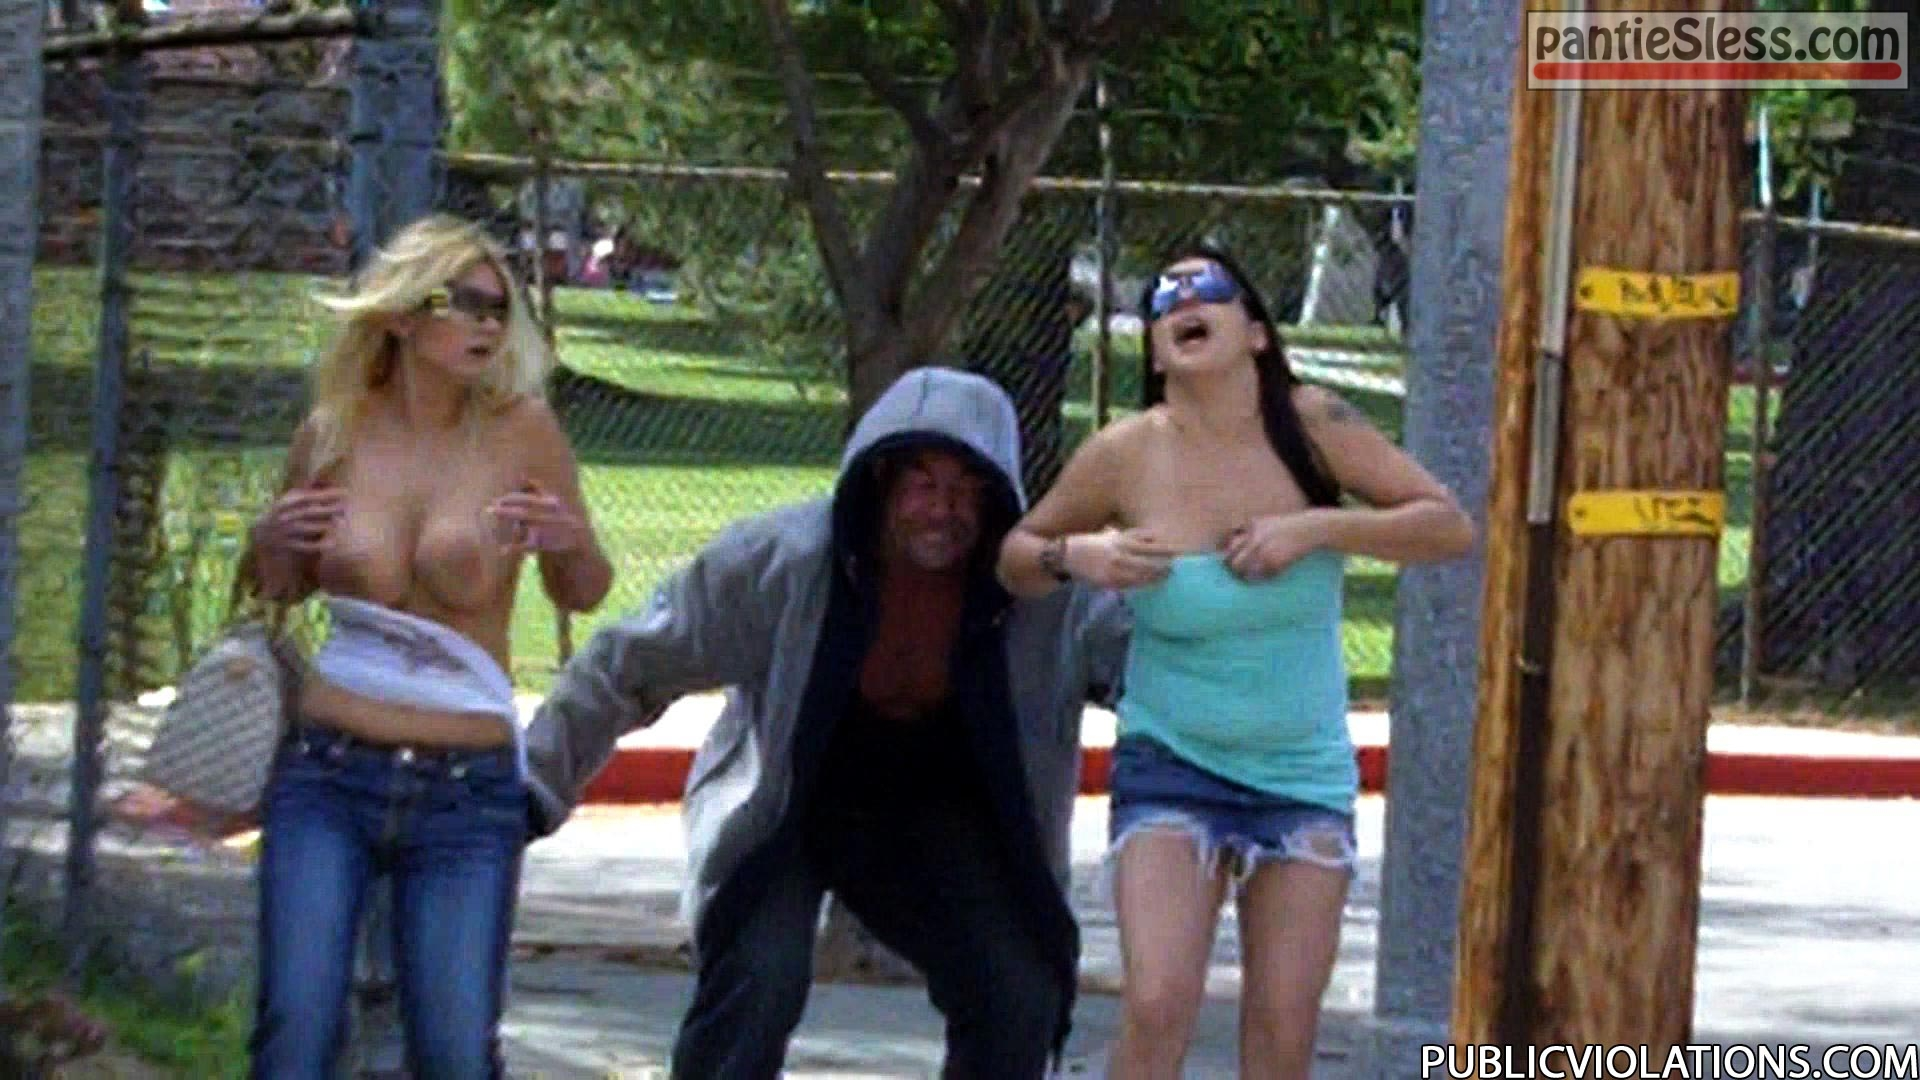 sharking public flashing downblouse dark haired college boobs flash blonde accidental flash  Old perv ripping off tops of two college girl on the street